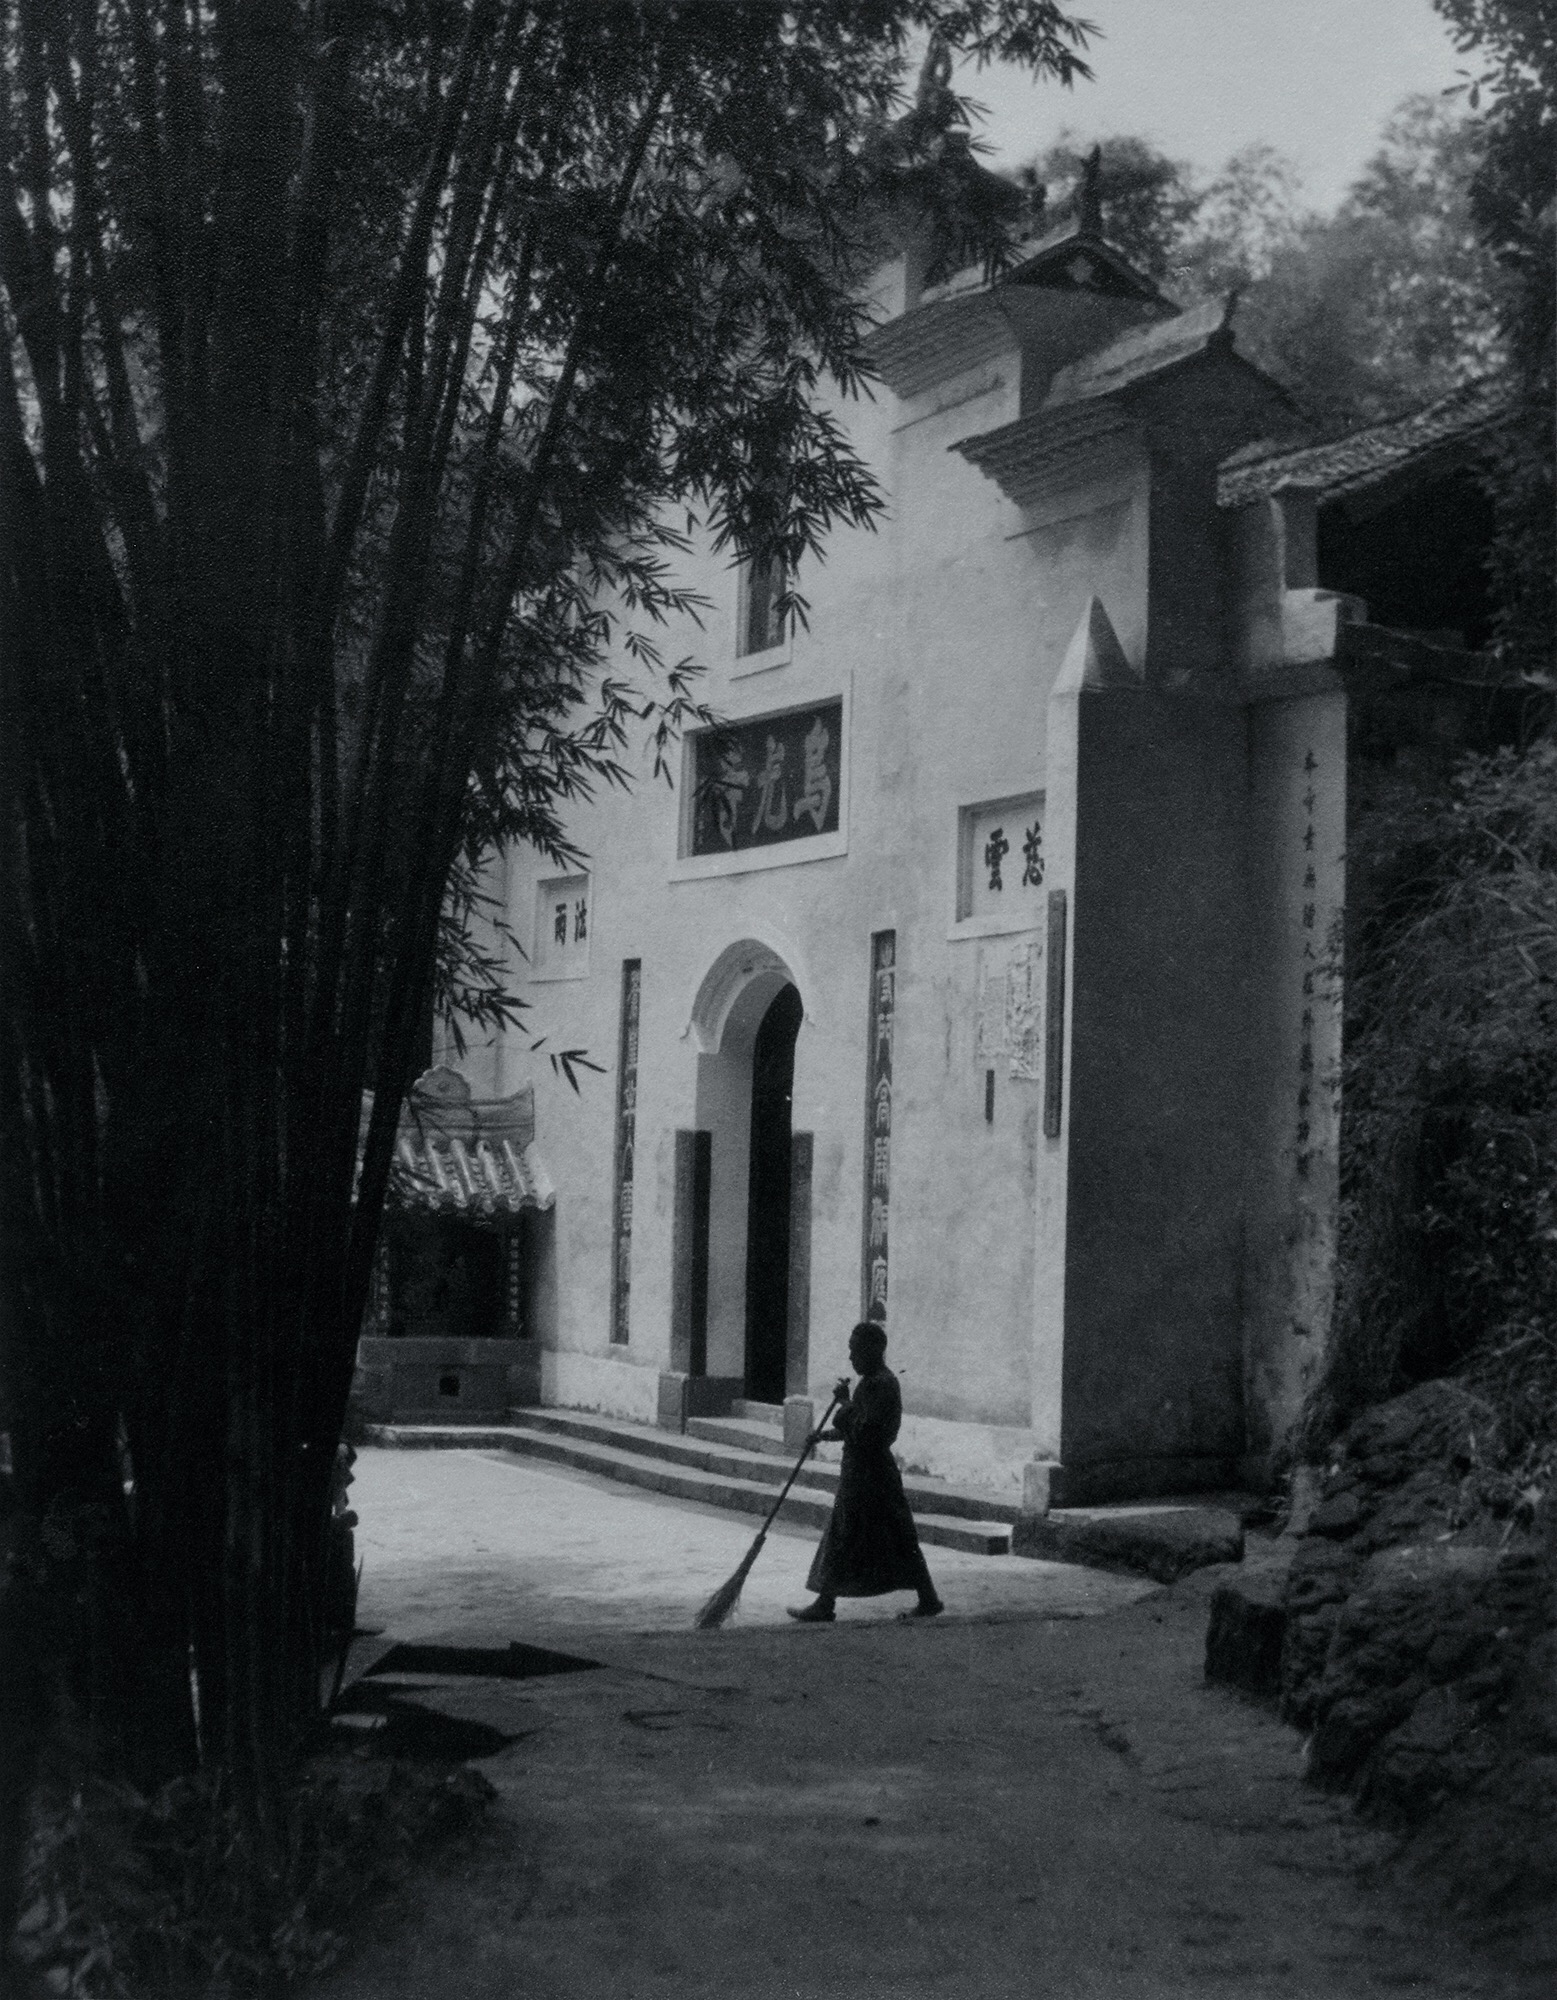 Lang Jingshan, Temple Sweeper, Leshan of Sichuan Province, 1939, printed in Taiwan on fine heavy paper by Lang Jingshan, early 1950s, 22.3x17.3 cm, courtesy of Huang Jianpeng Gallery 黄建鹏画廊